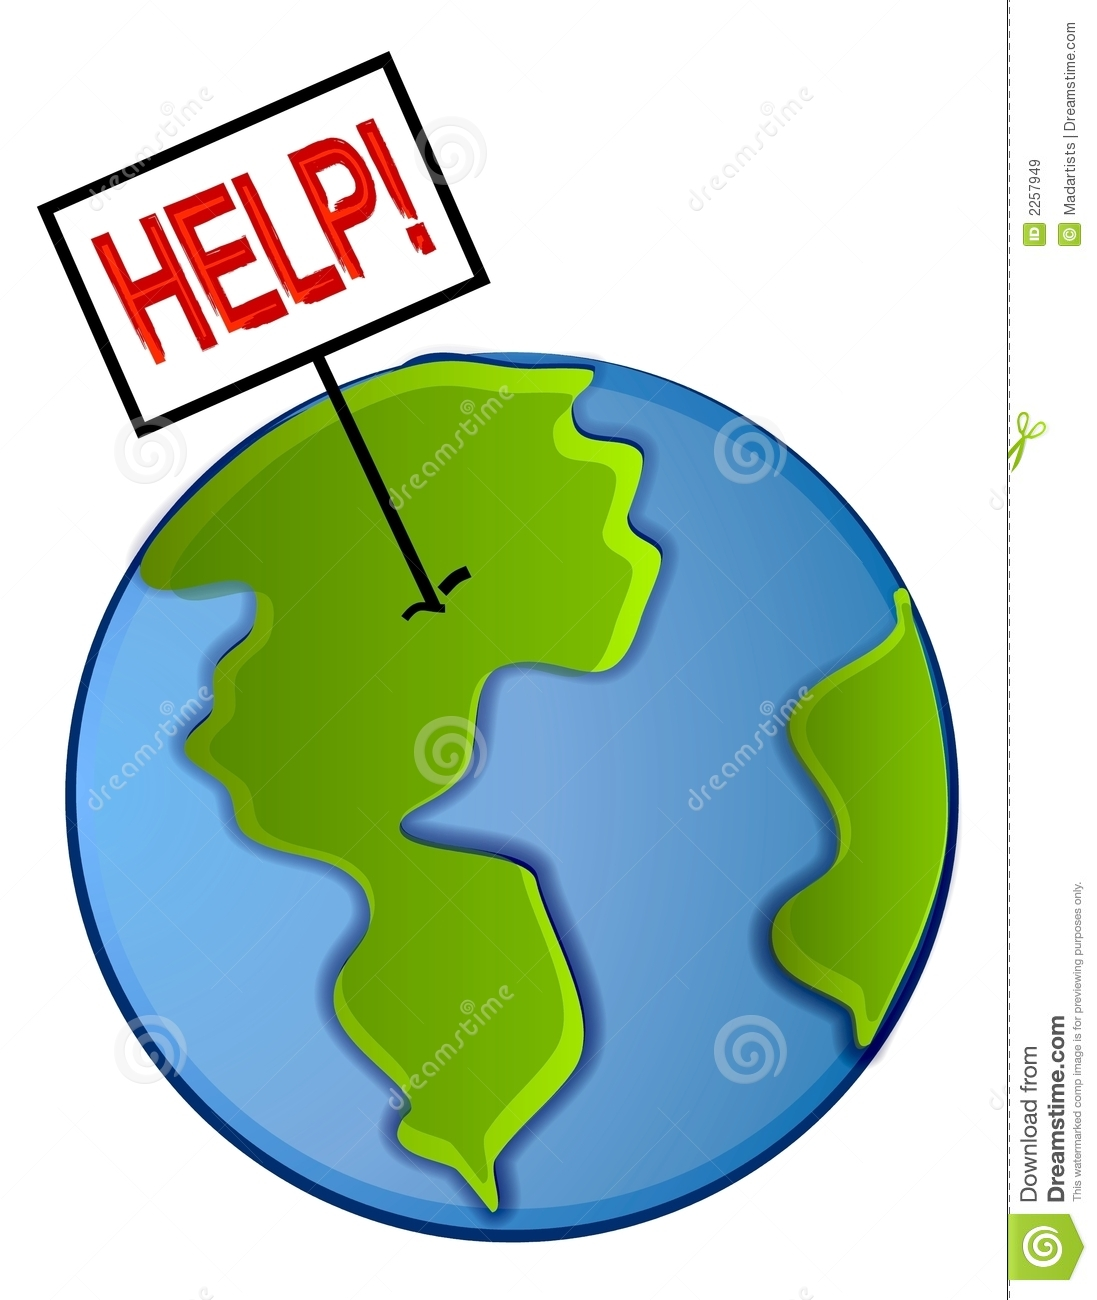 clipart save the earth - photo #4